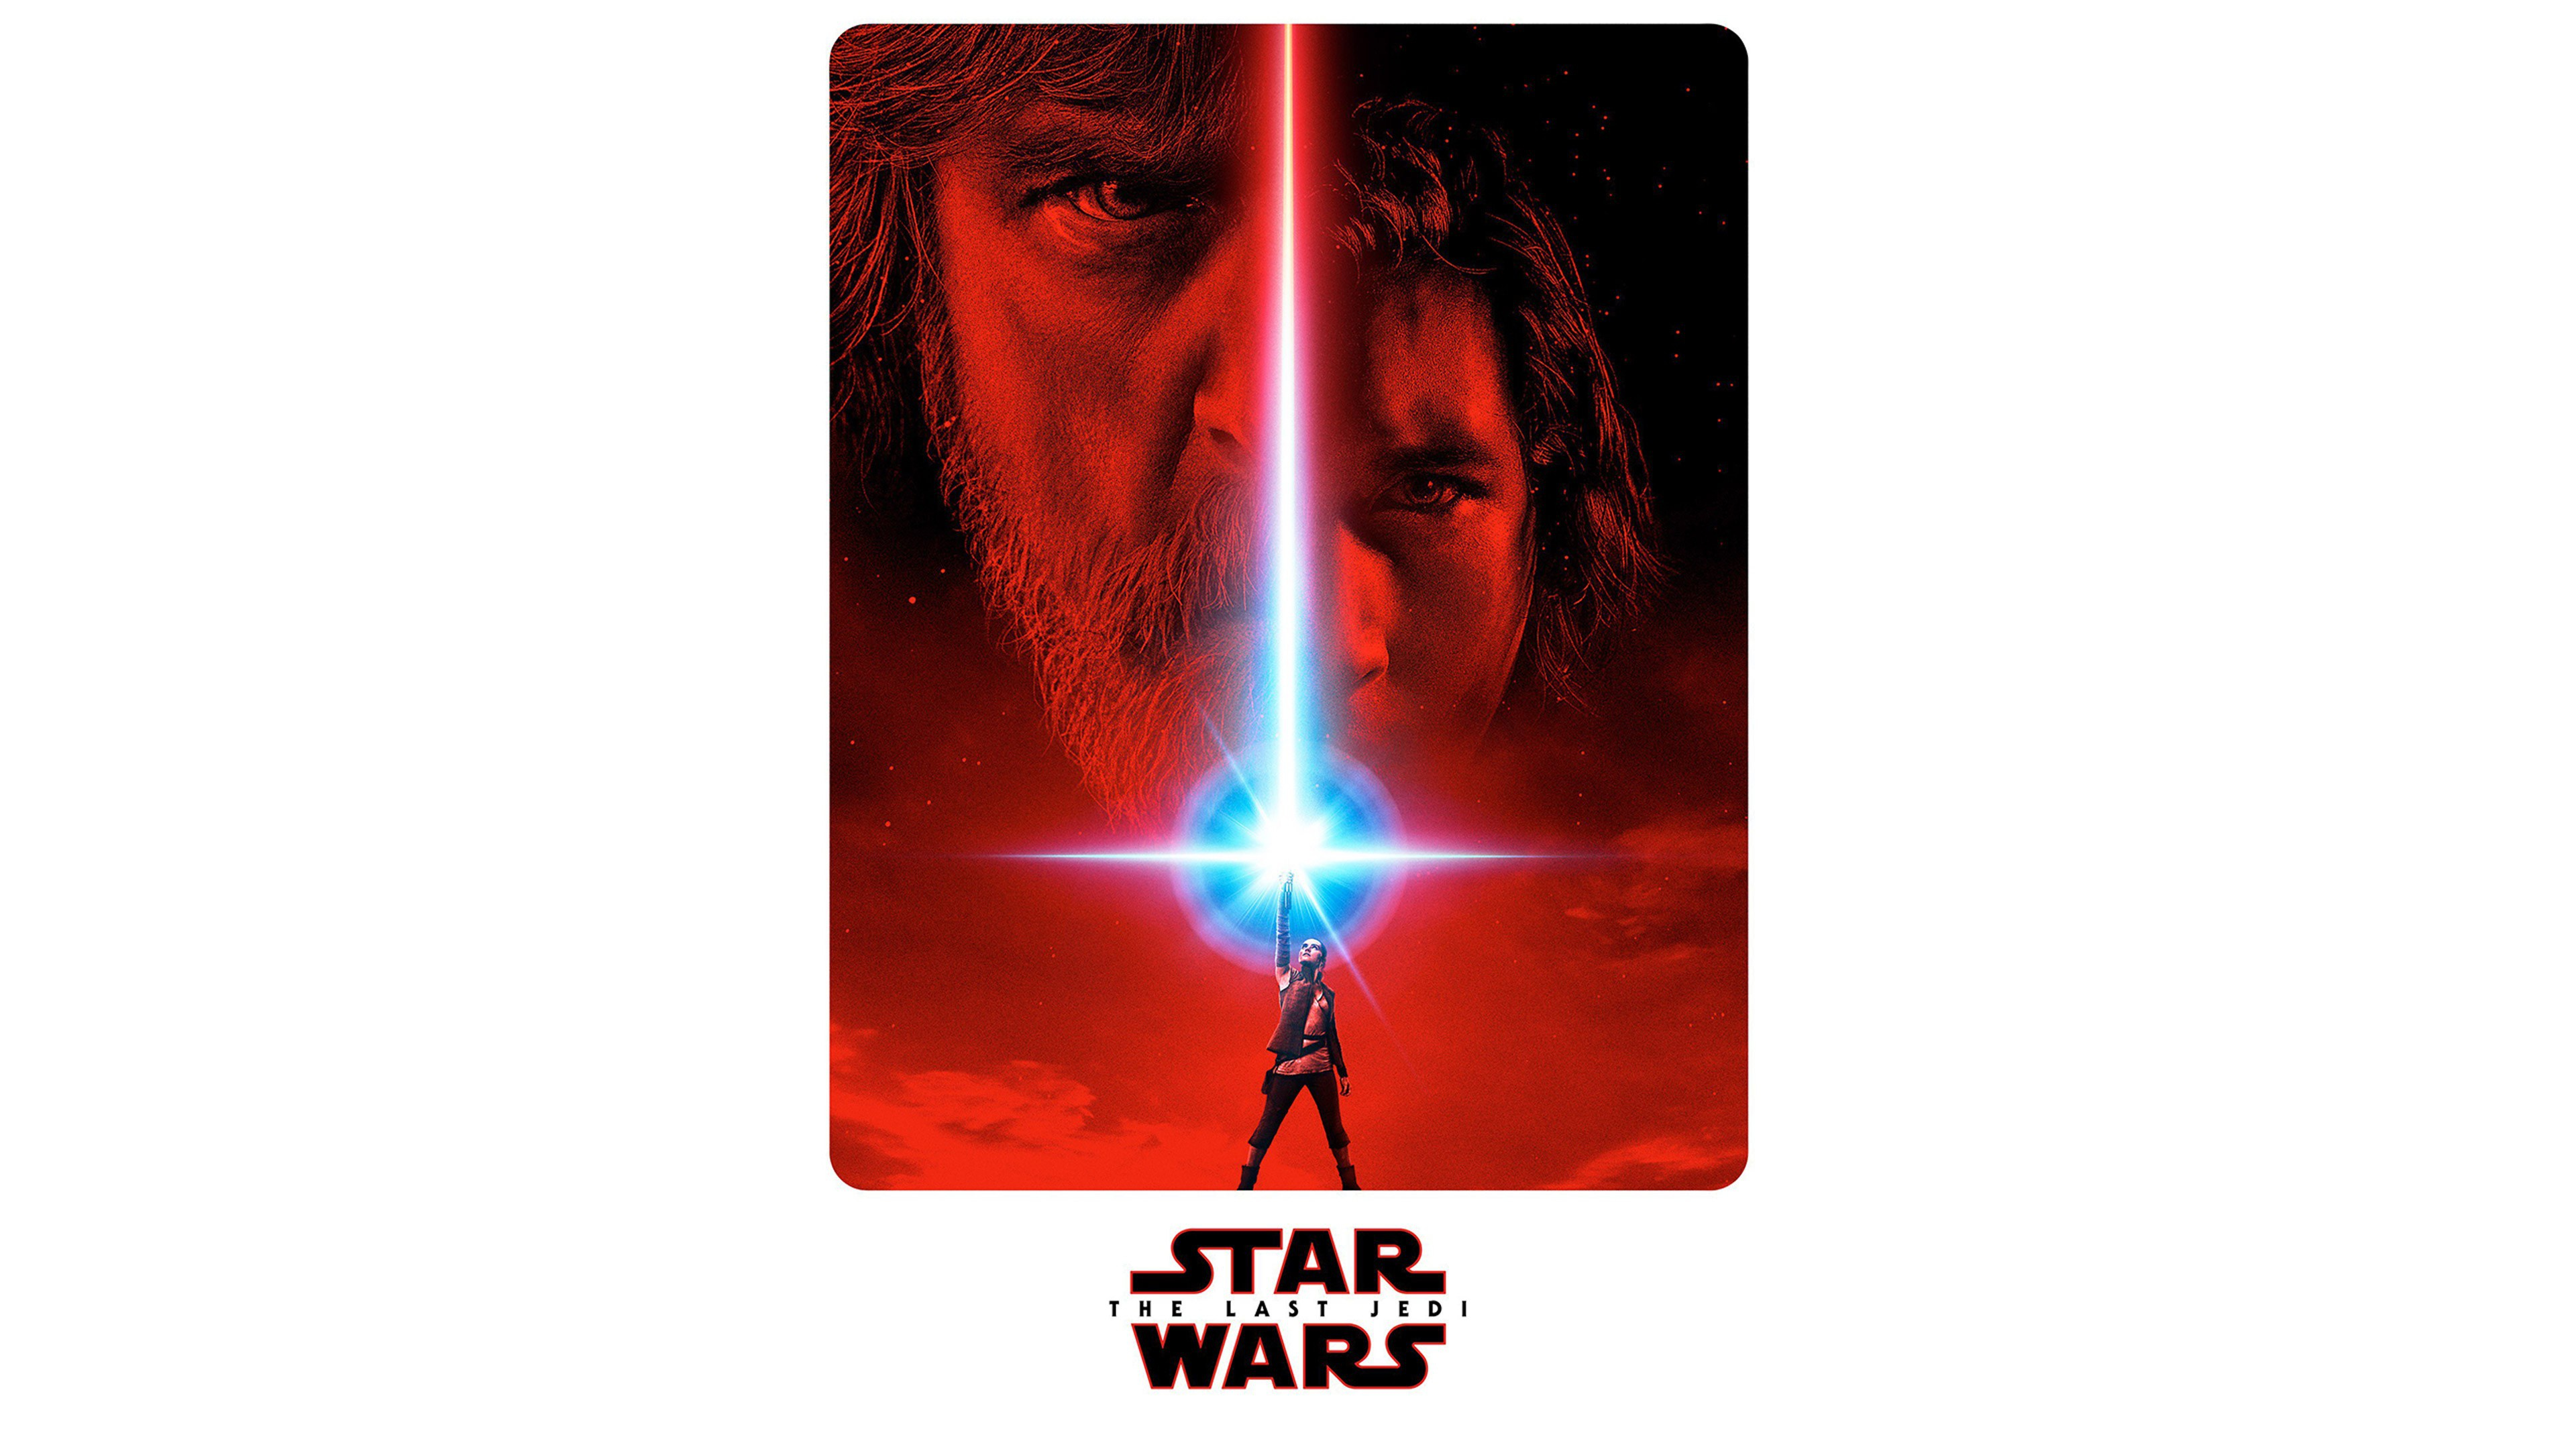 125 Star Wars The Last Jedi Hd Wallpapers Background Images